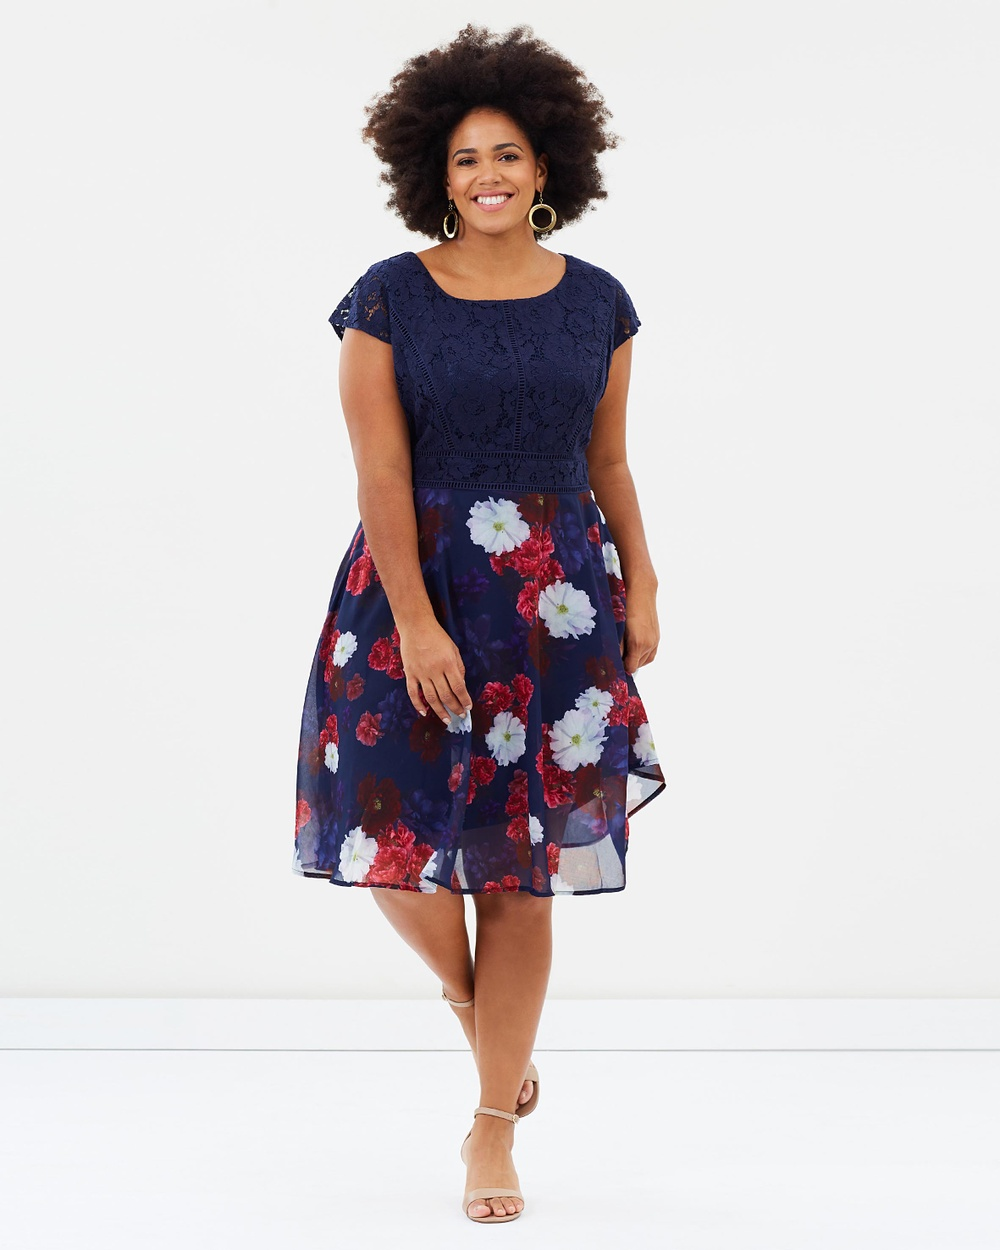 Studio 8 Nicole Dress Dresses Navy Nicole Dress